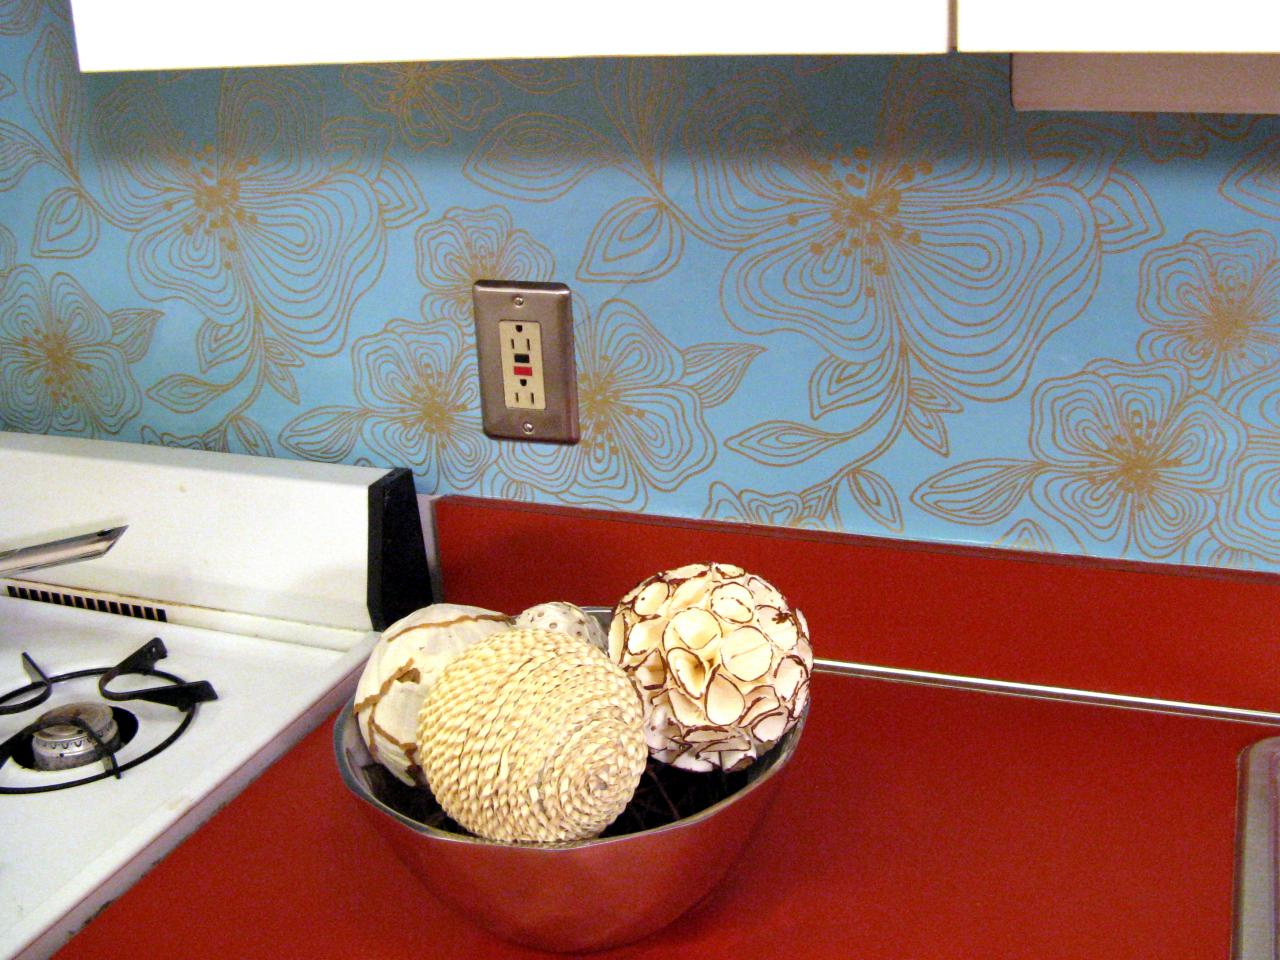 100 Half Day Designs Wallpapered Backsplash Kitchen Ideas Design 1280x960